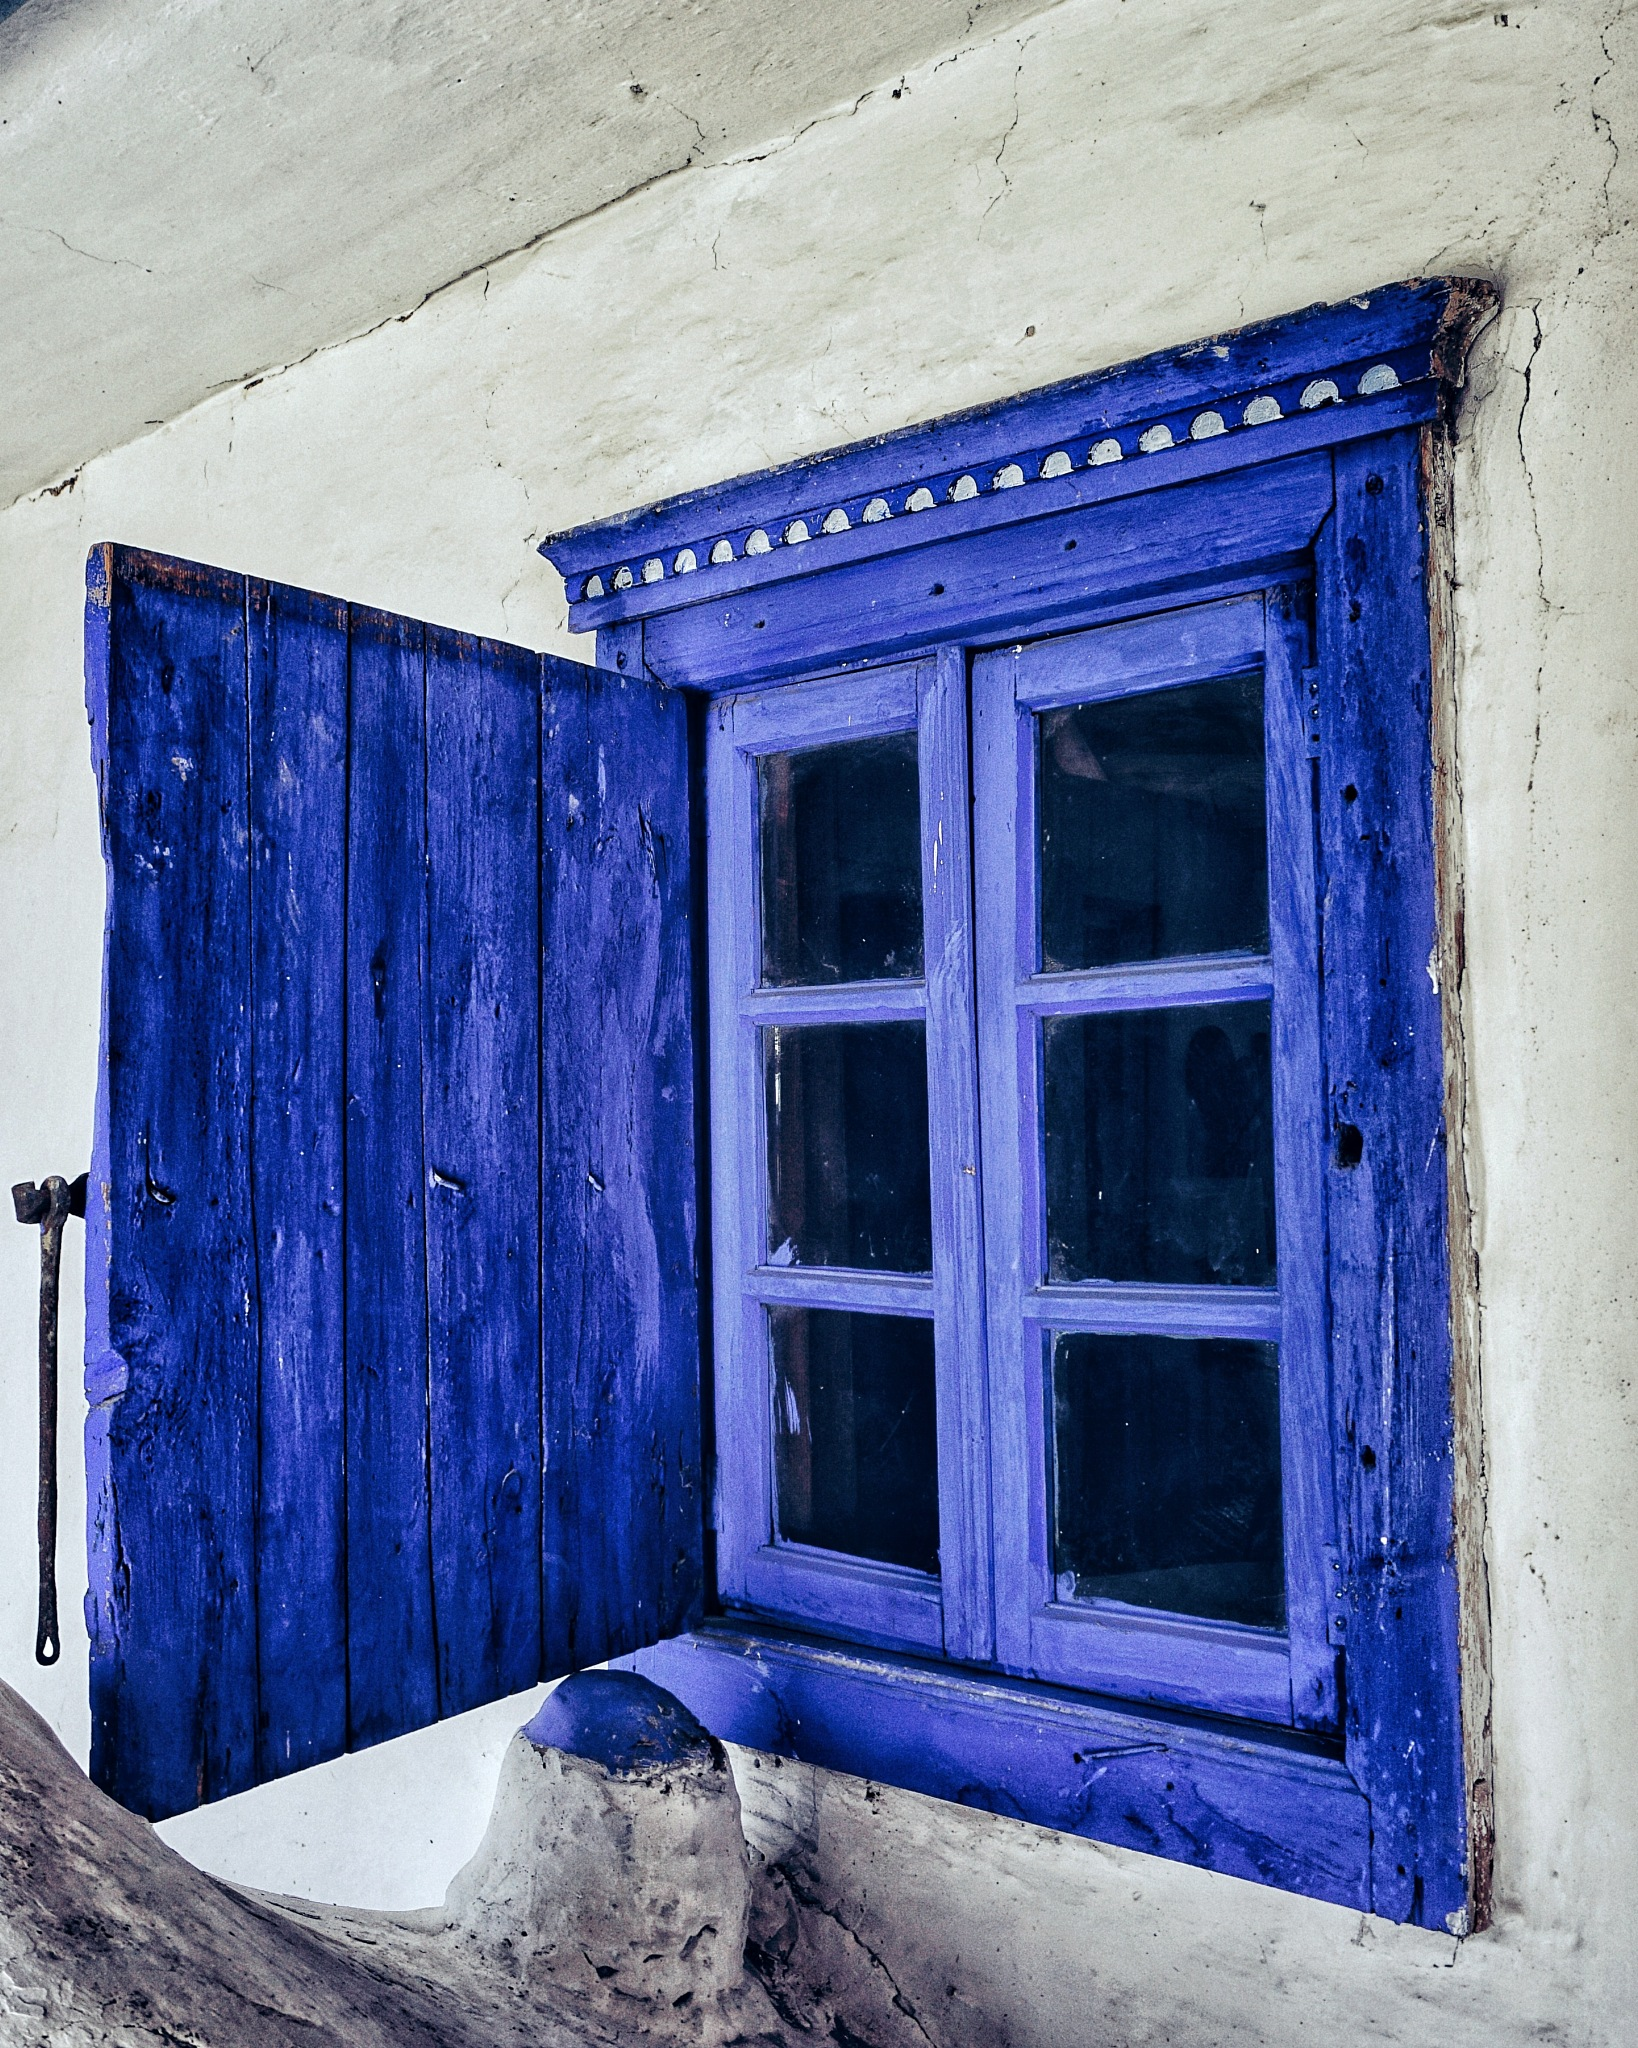 Window into the past by Costin0509